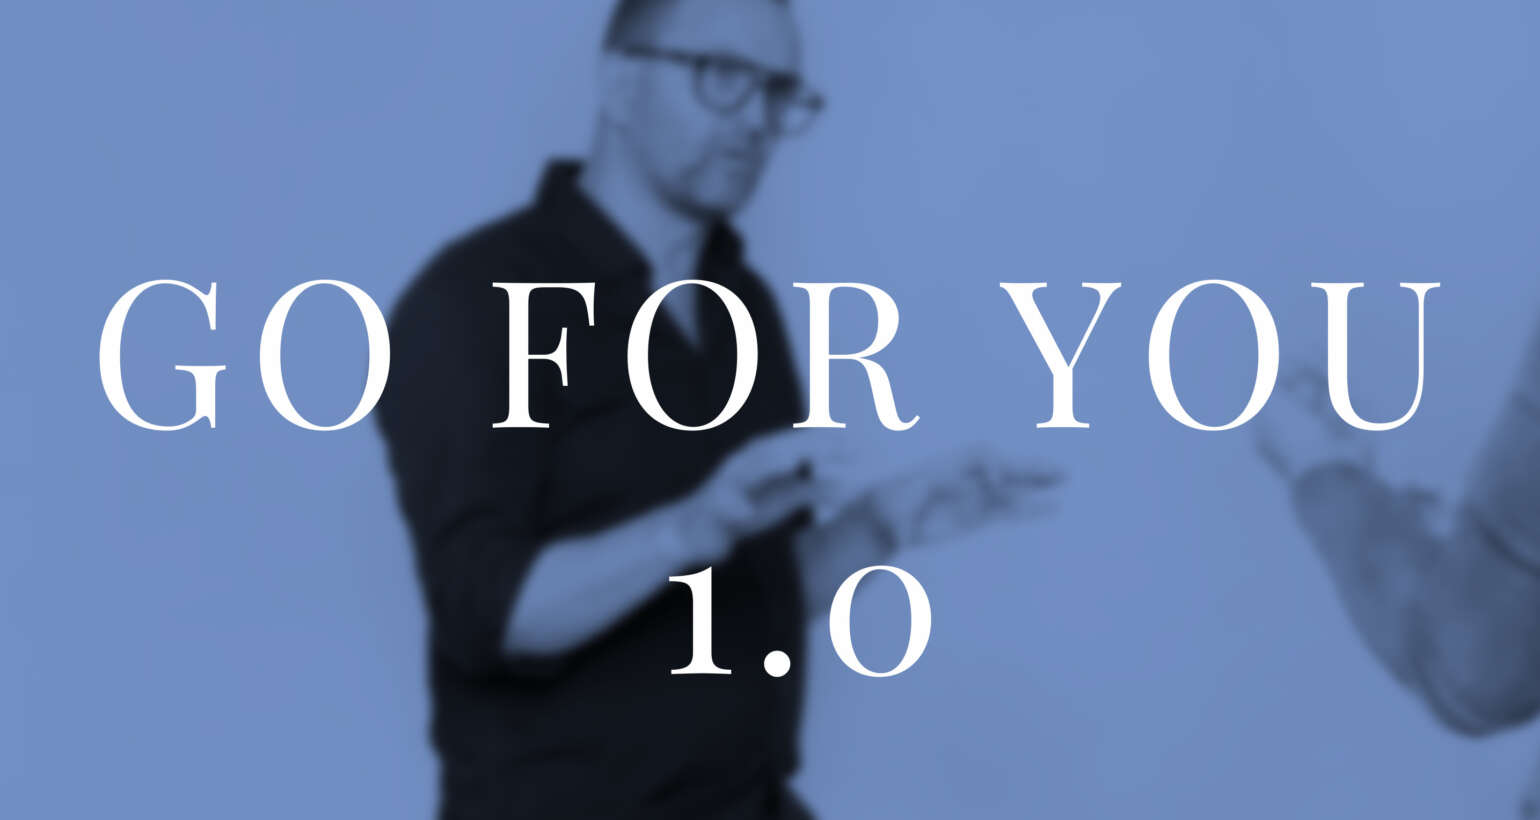 Go For You 1.0 | Kenet Carmohn